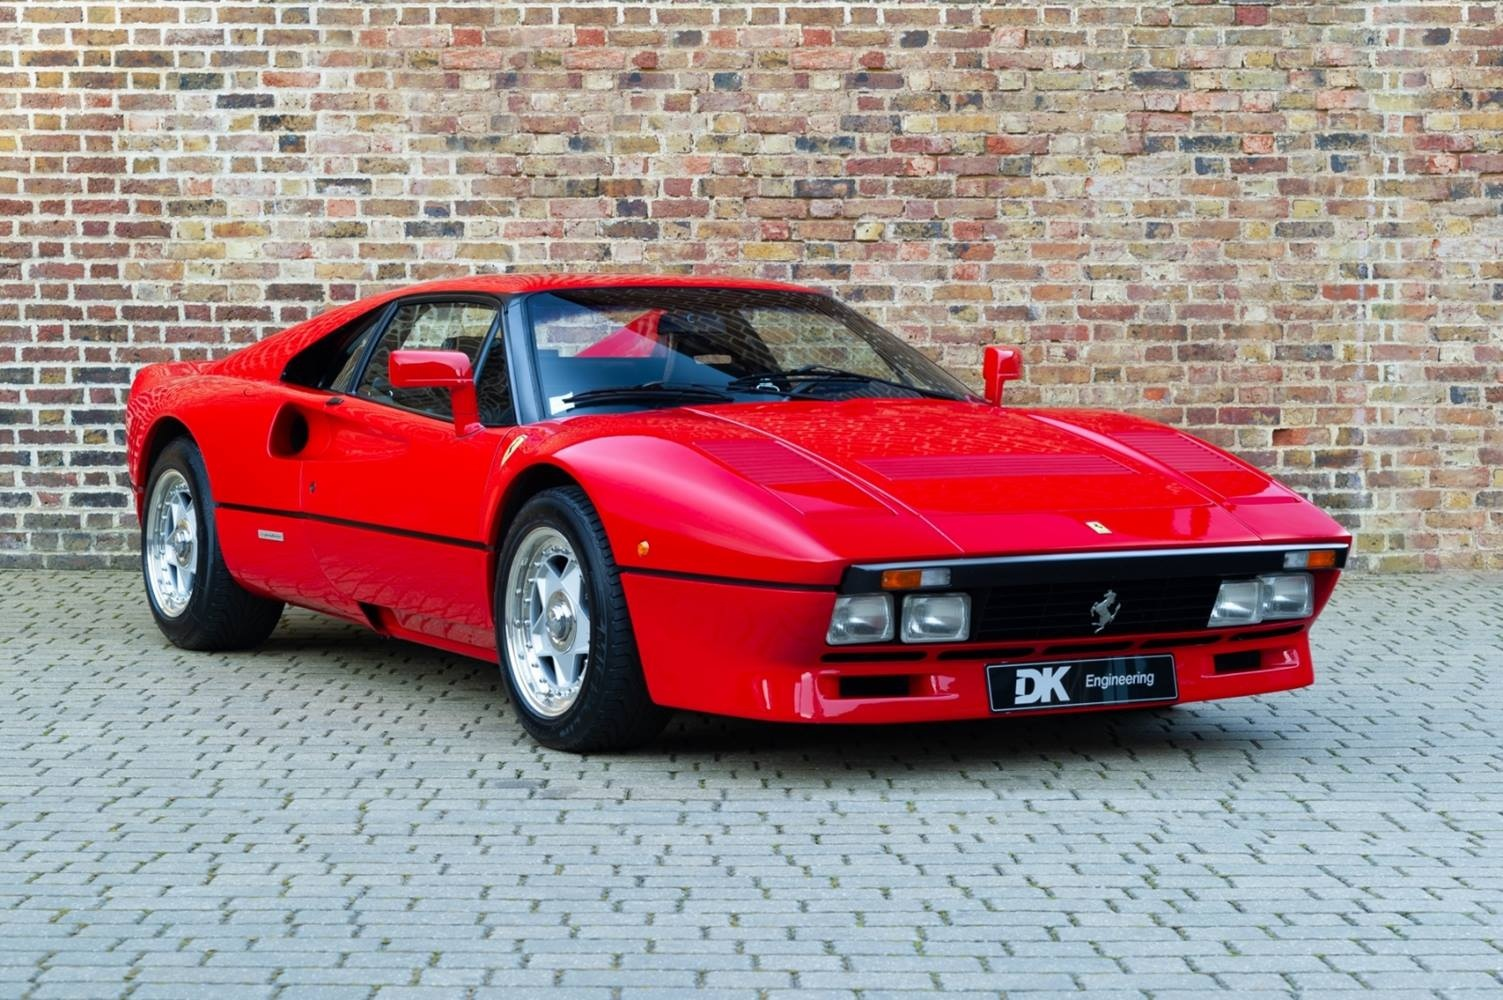 Ferrari 288 Gto For Sale Vehicle Sales Dk Engineering